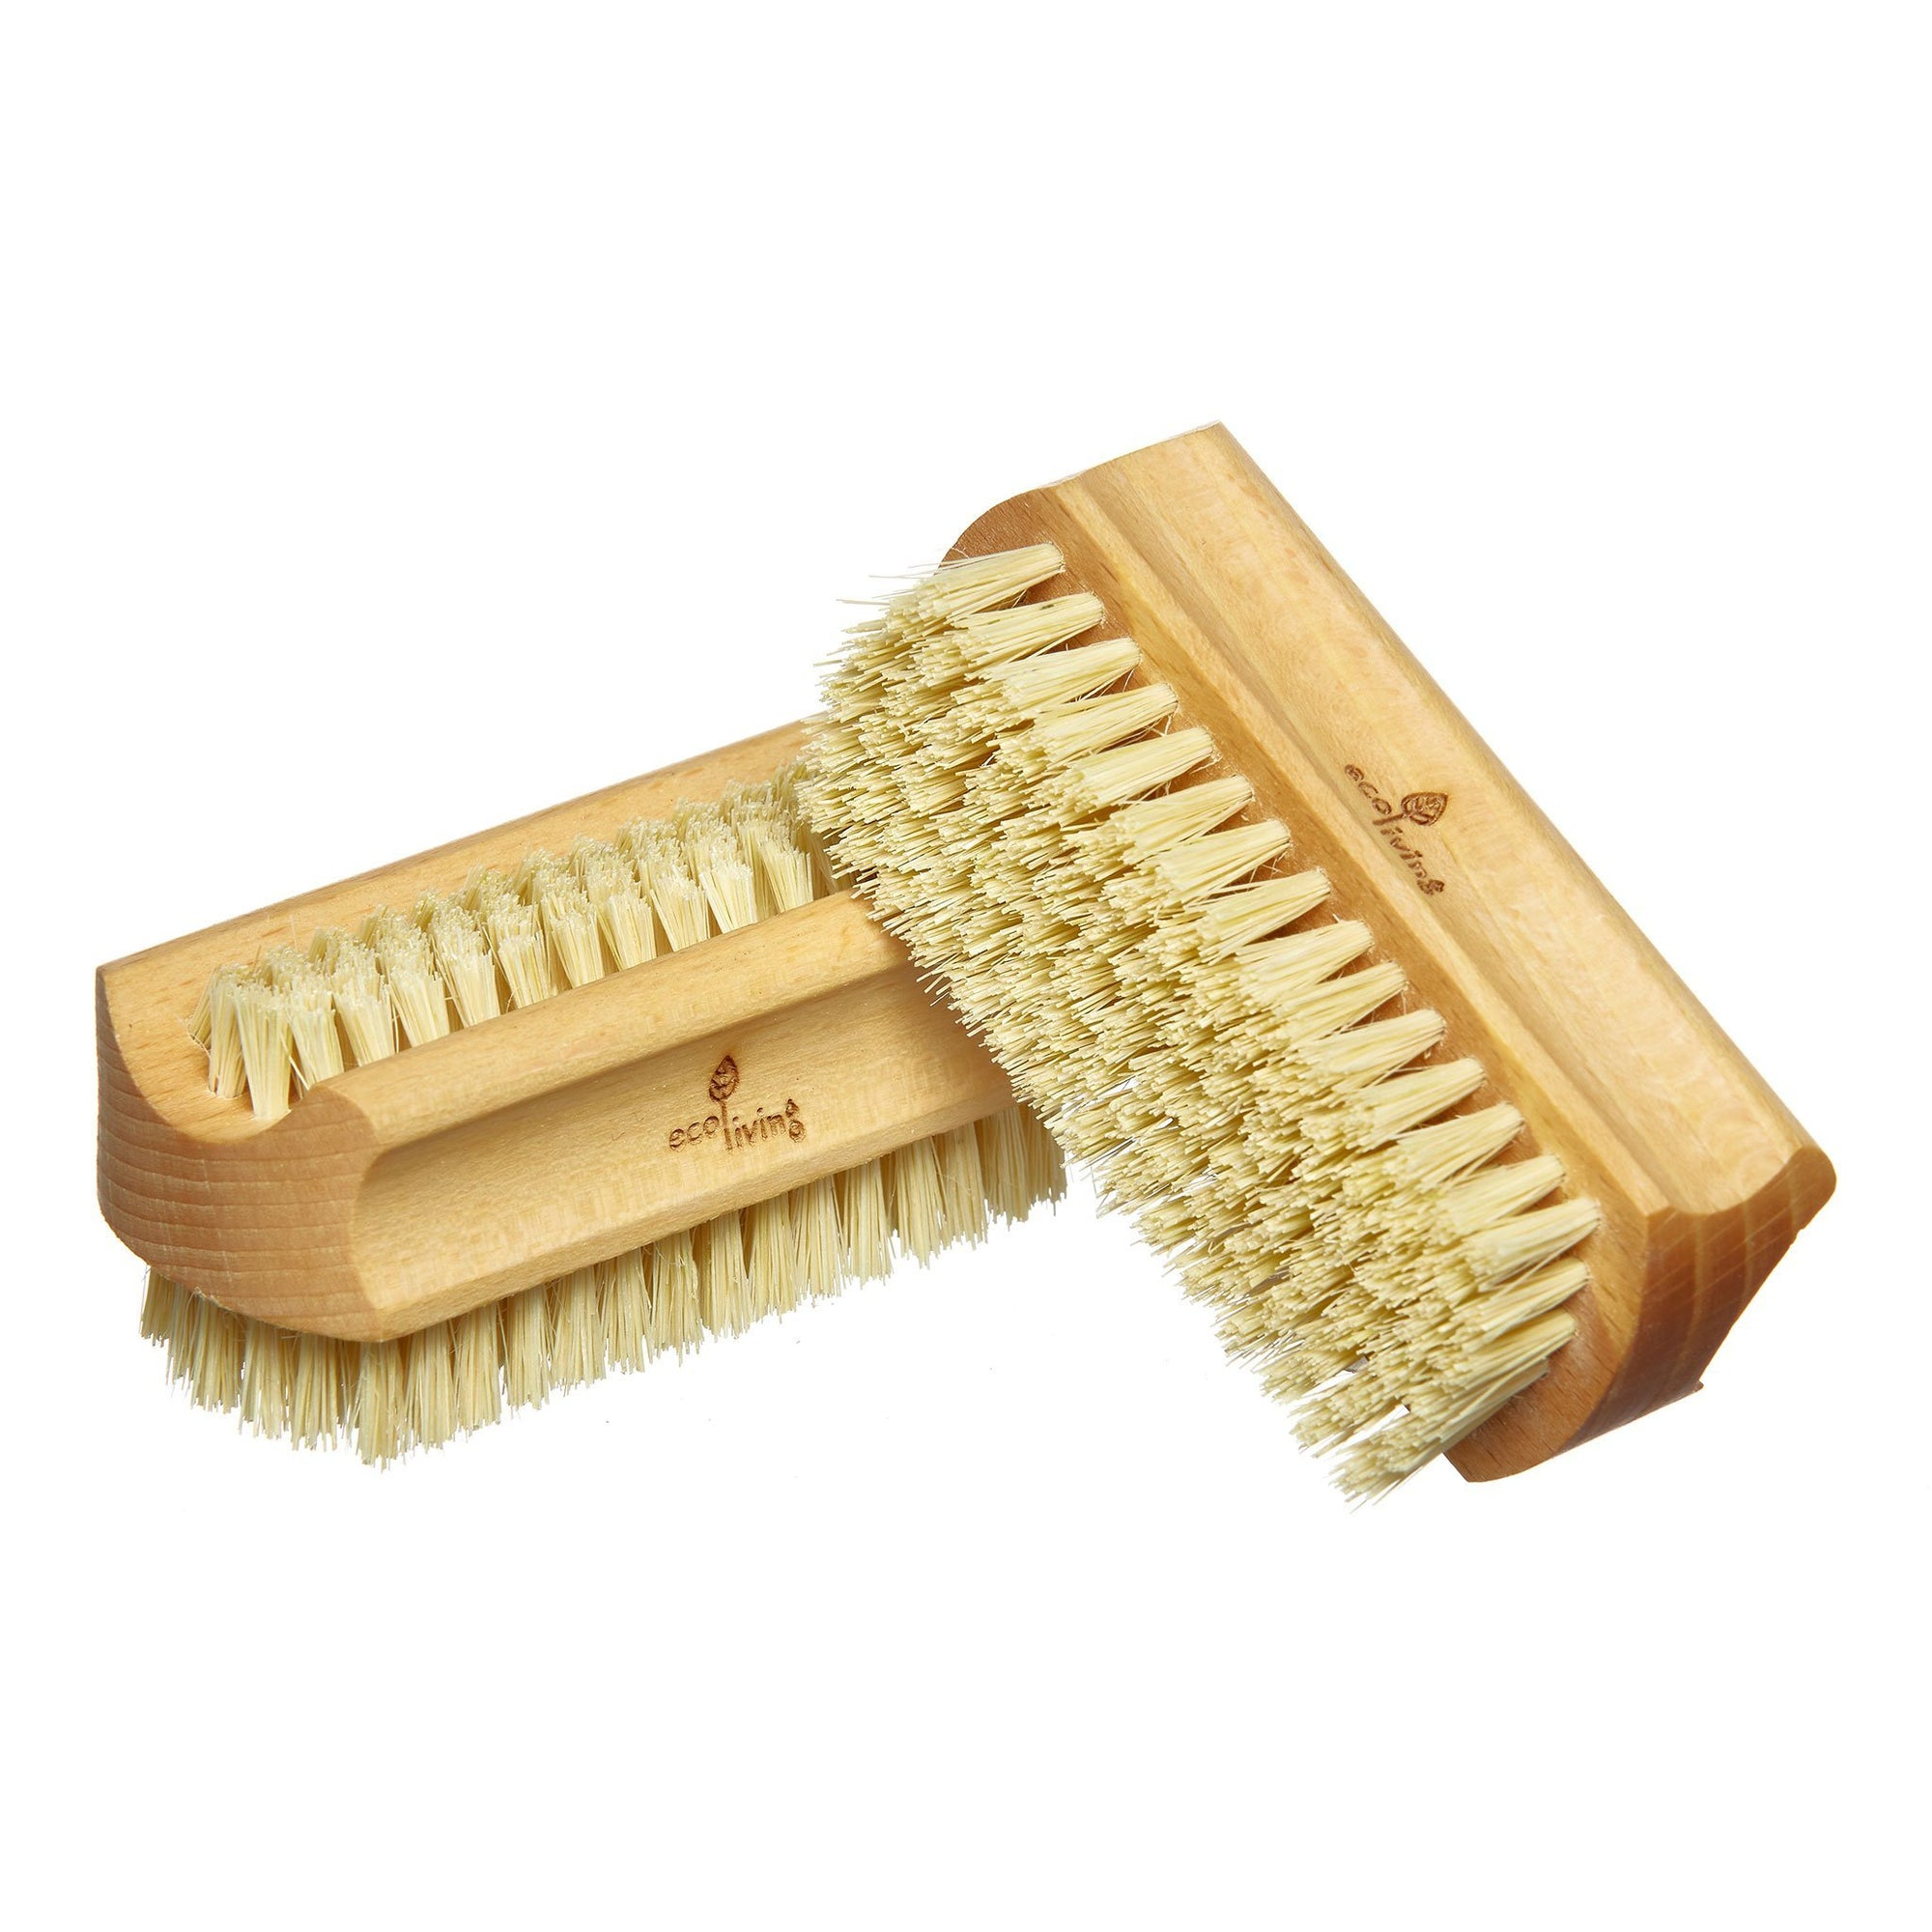 Natural Wooden Nail Brush | Nail Brush - The Naughty Shrew